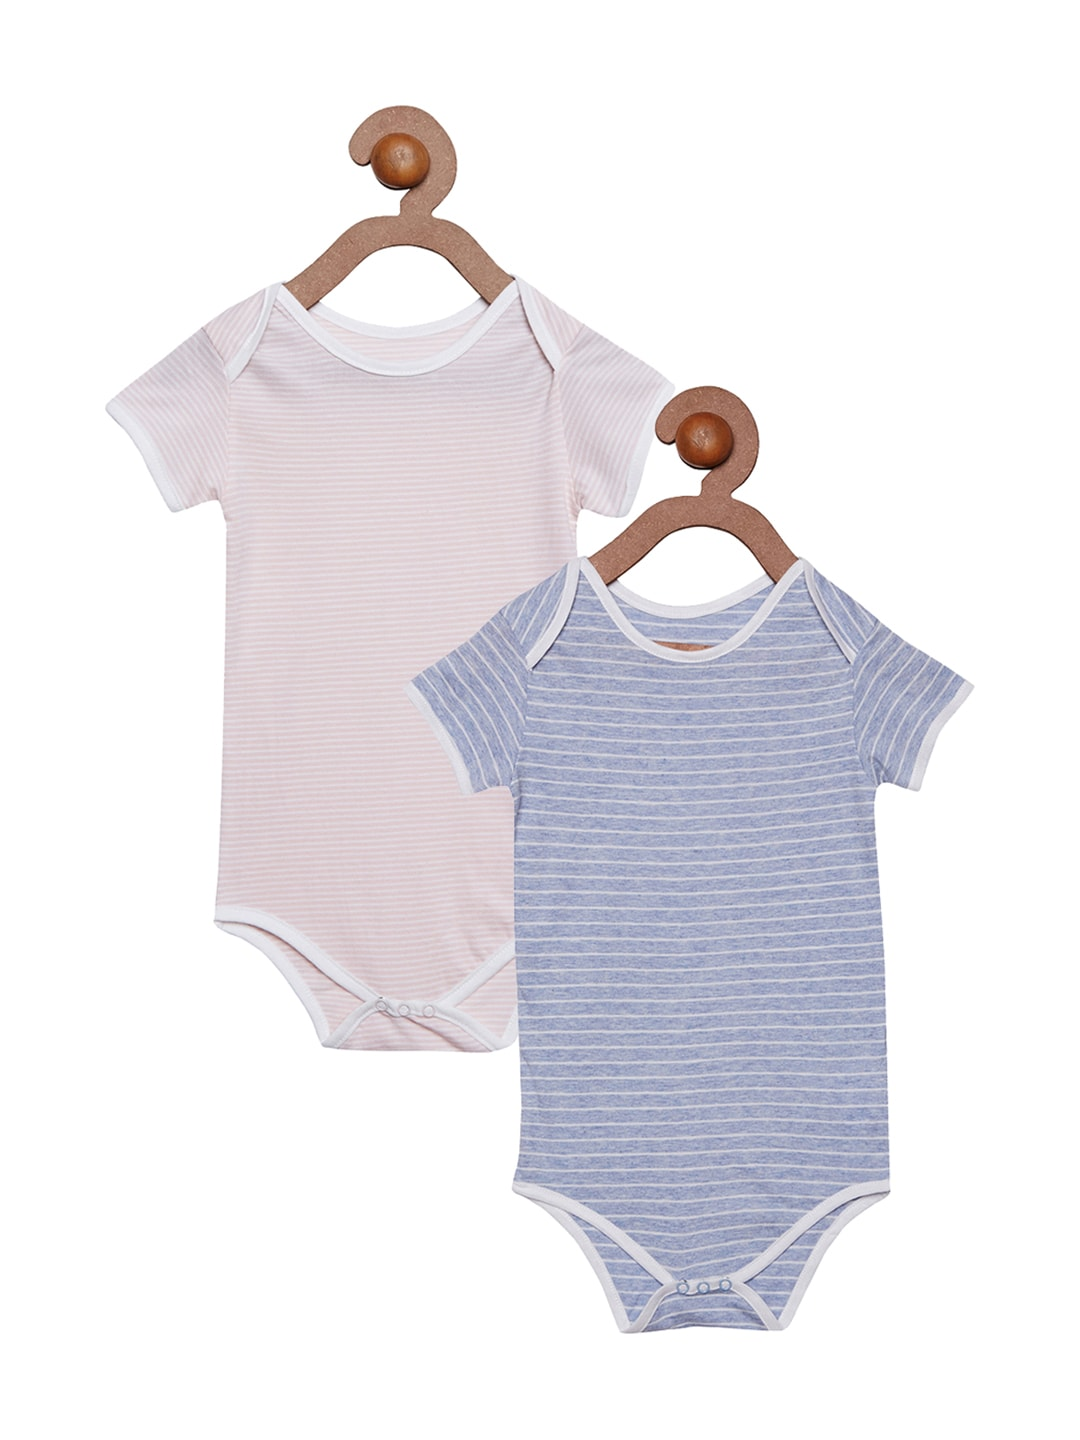 berrytree Kids Pack of 2 Striped Bodysuits image